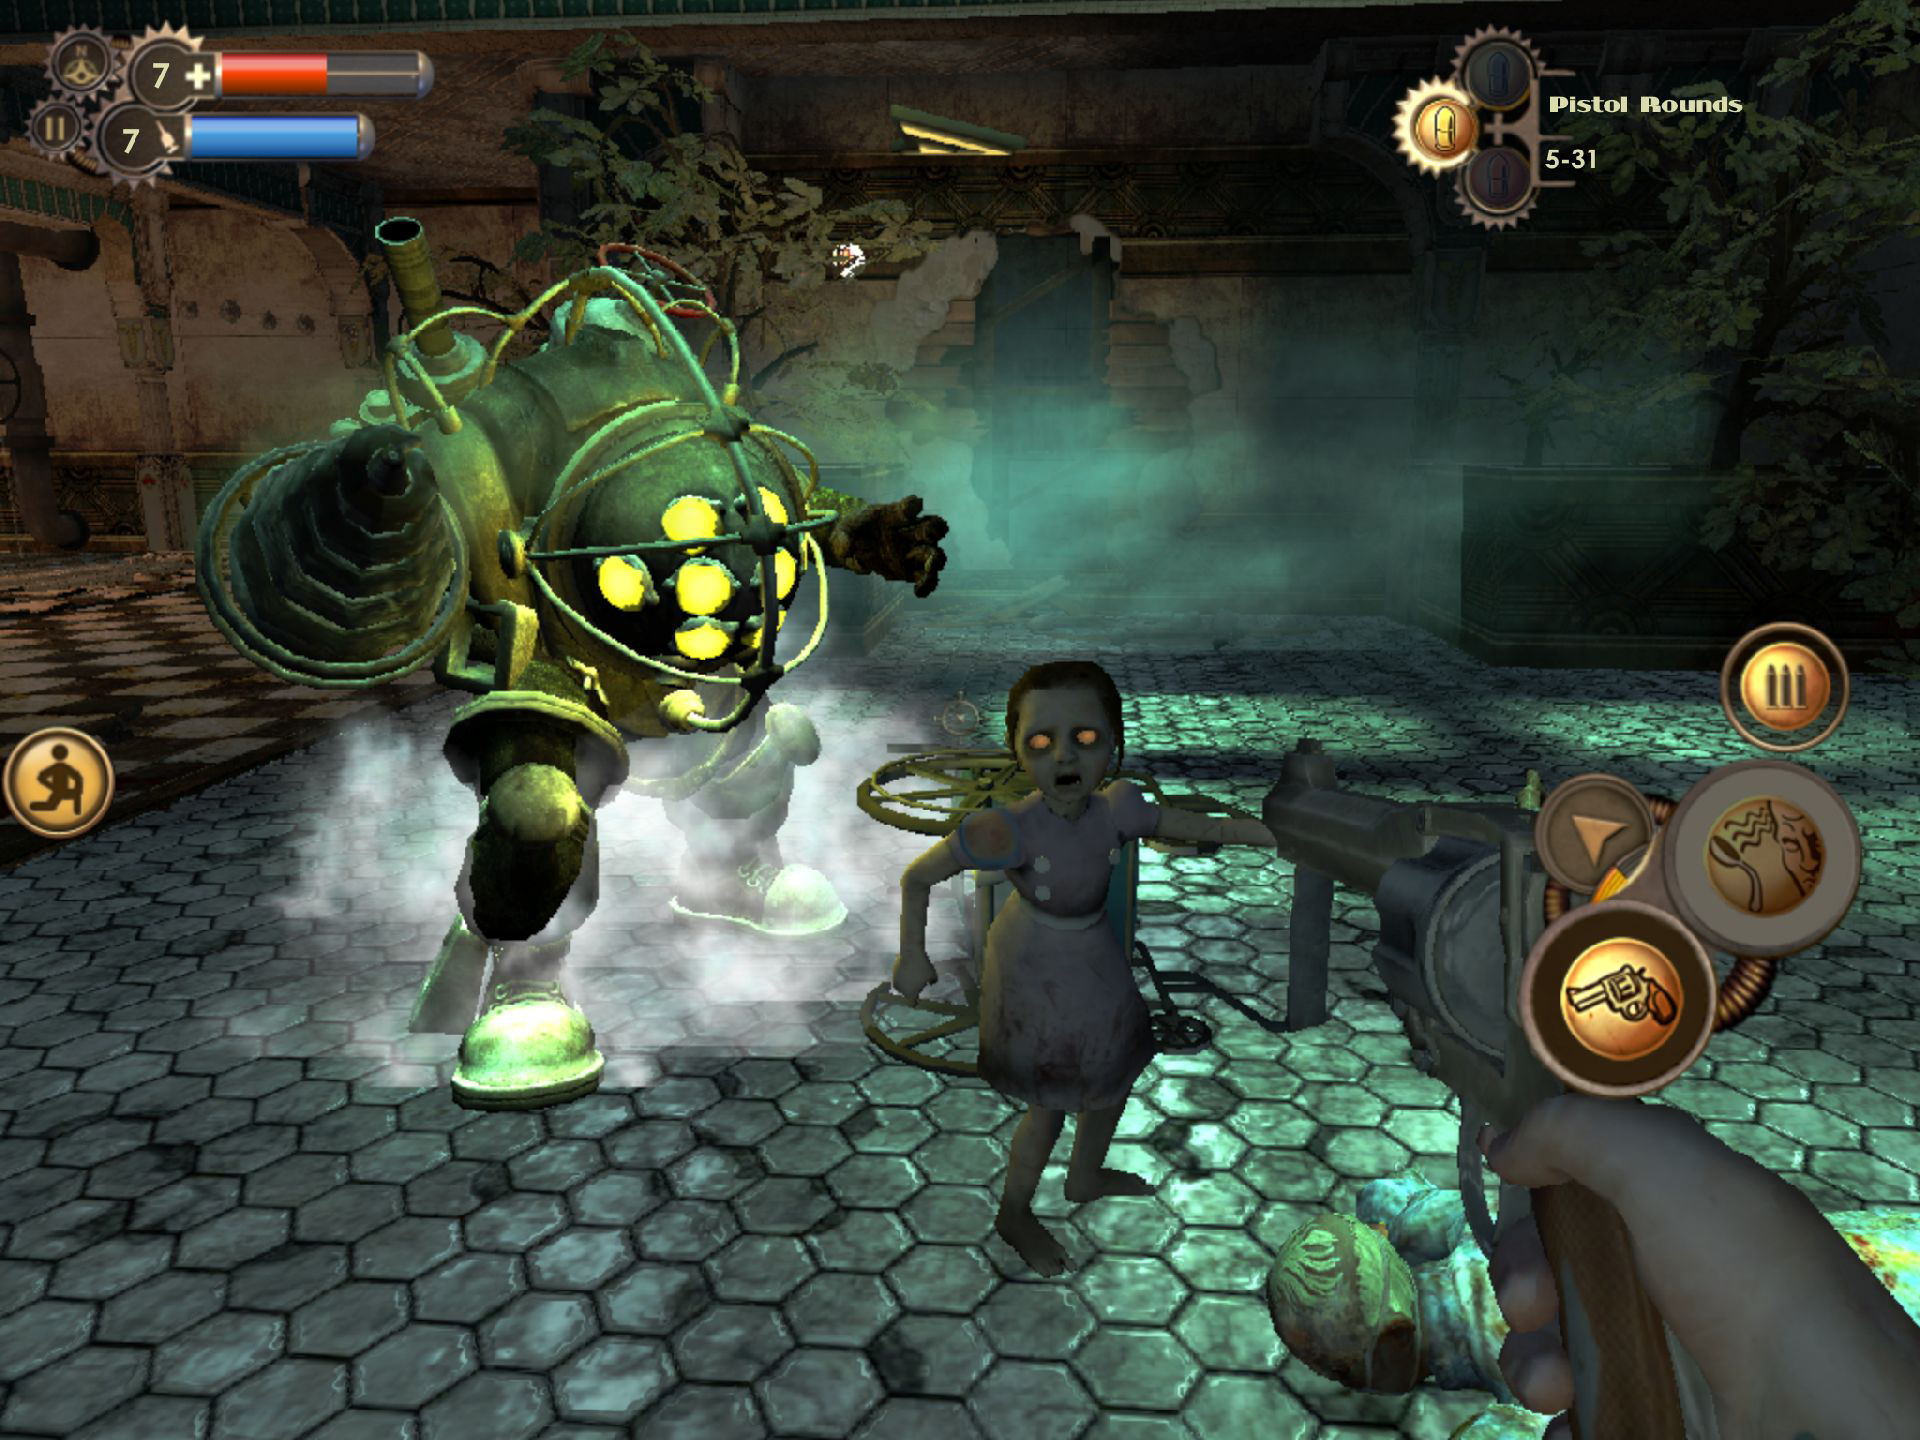 Bioshock for iOS has seemingly been removed from the App Store permanently